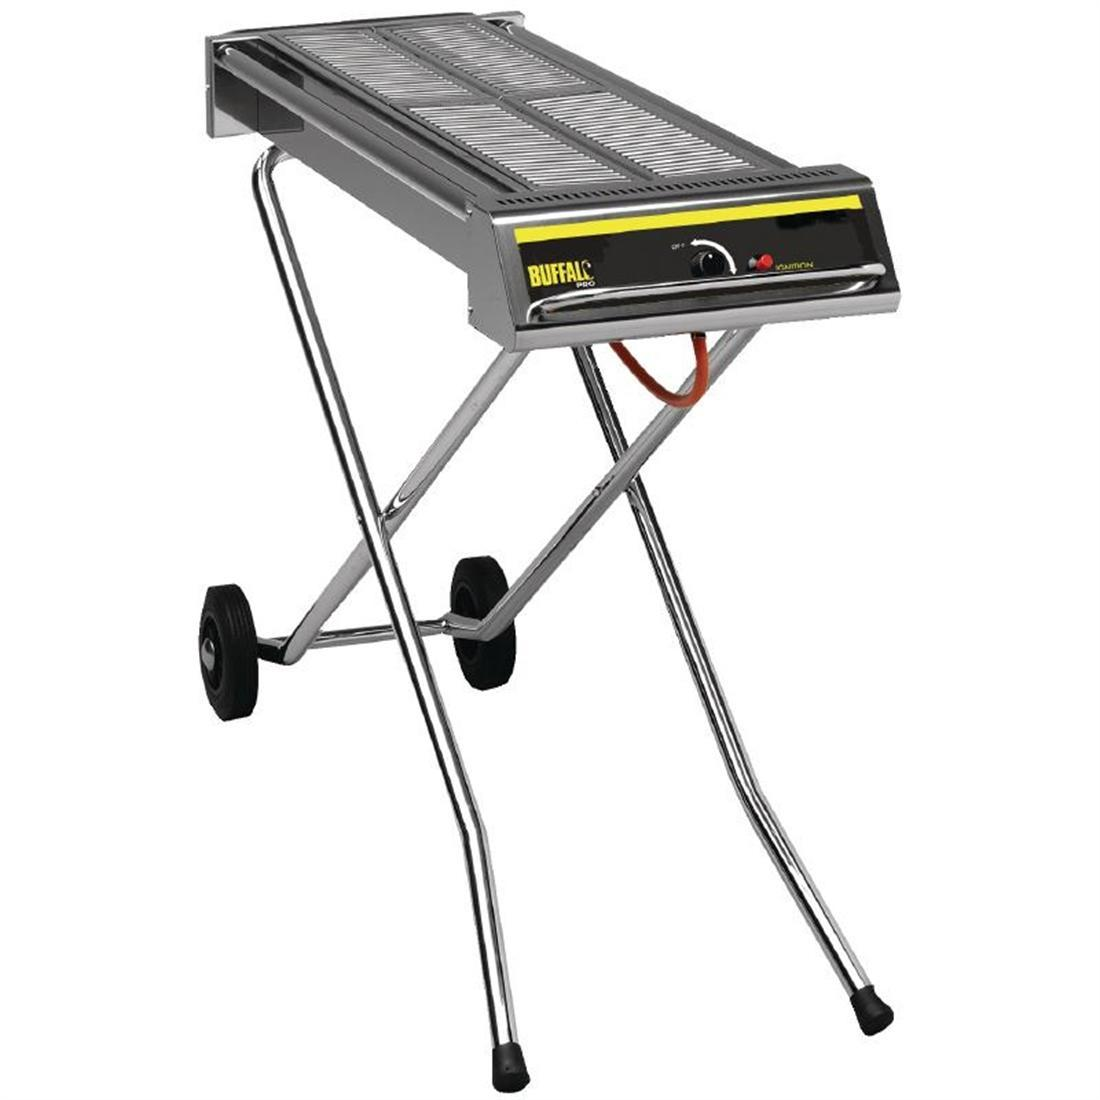 Buffalo Folding Propane Gas Barbecue - P111